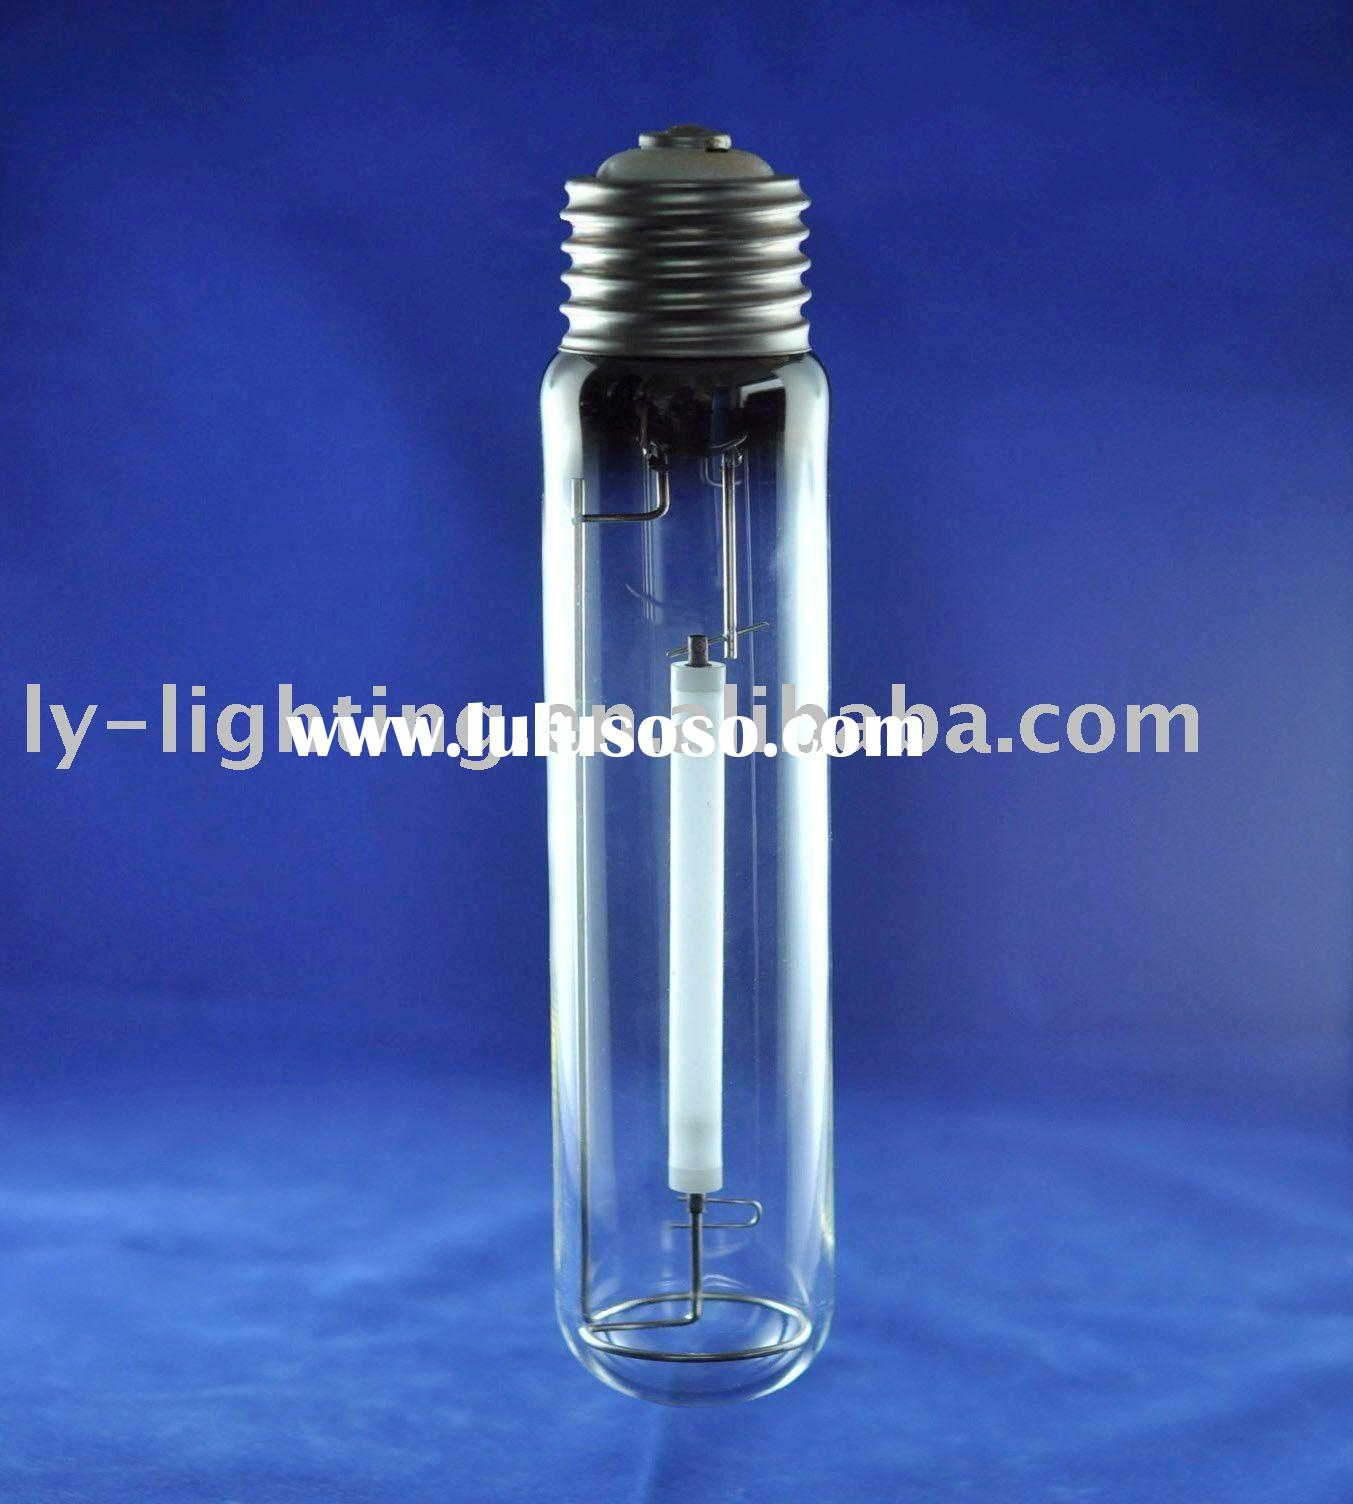 High Pressure Sodium Lamp 250W 400W